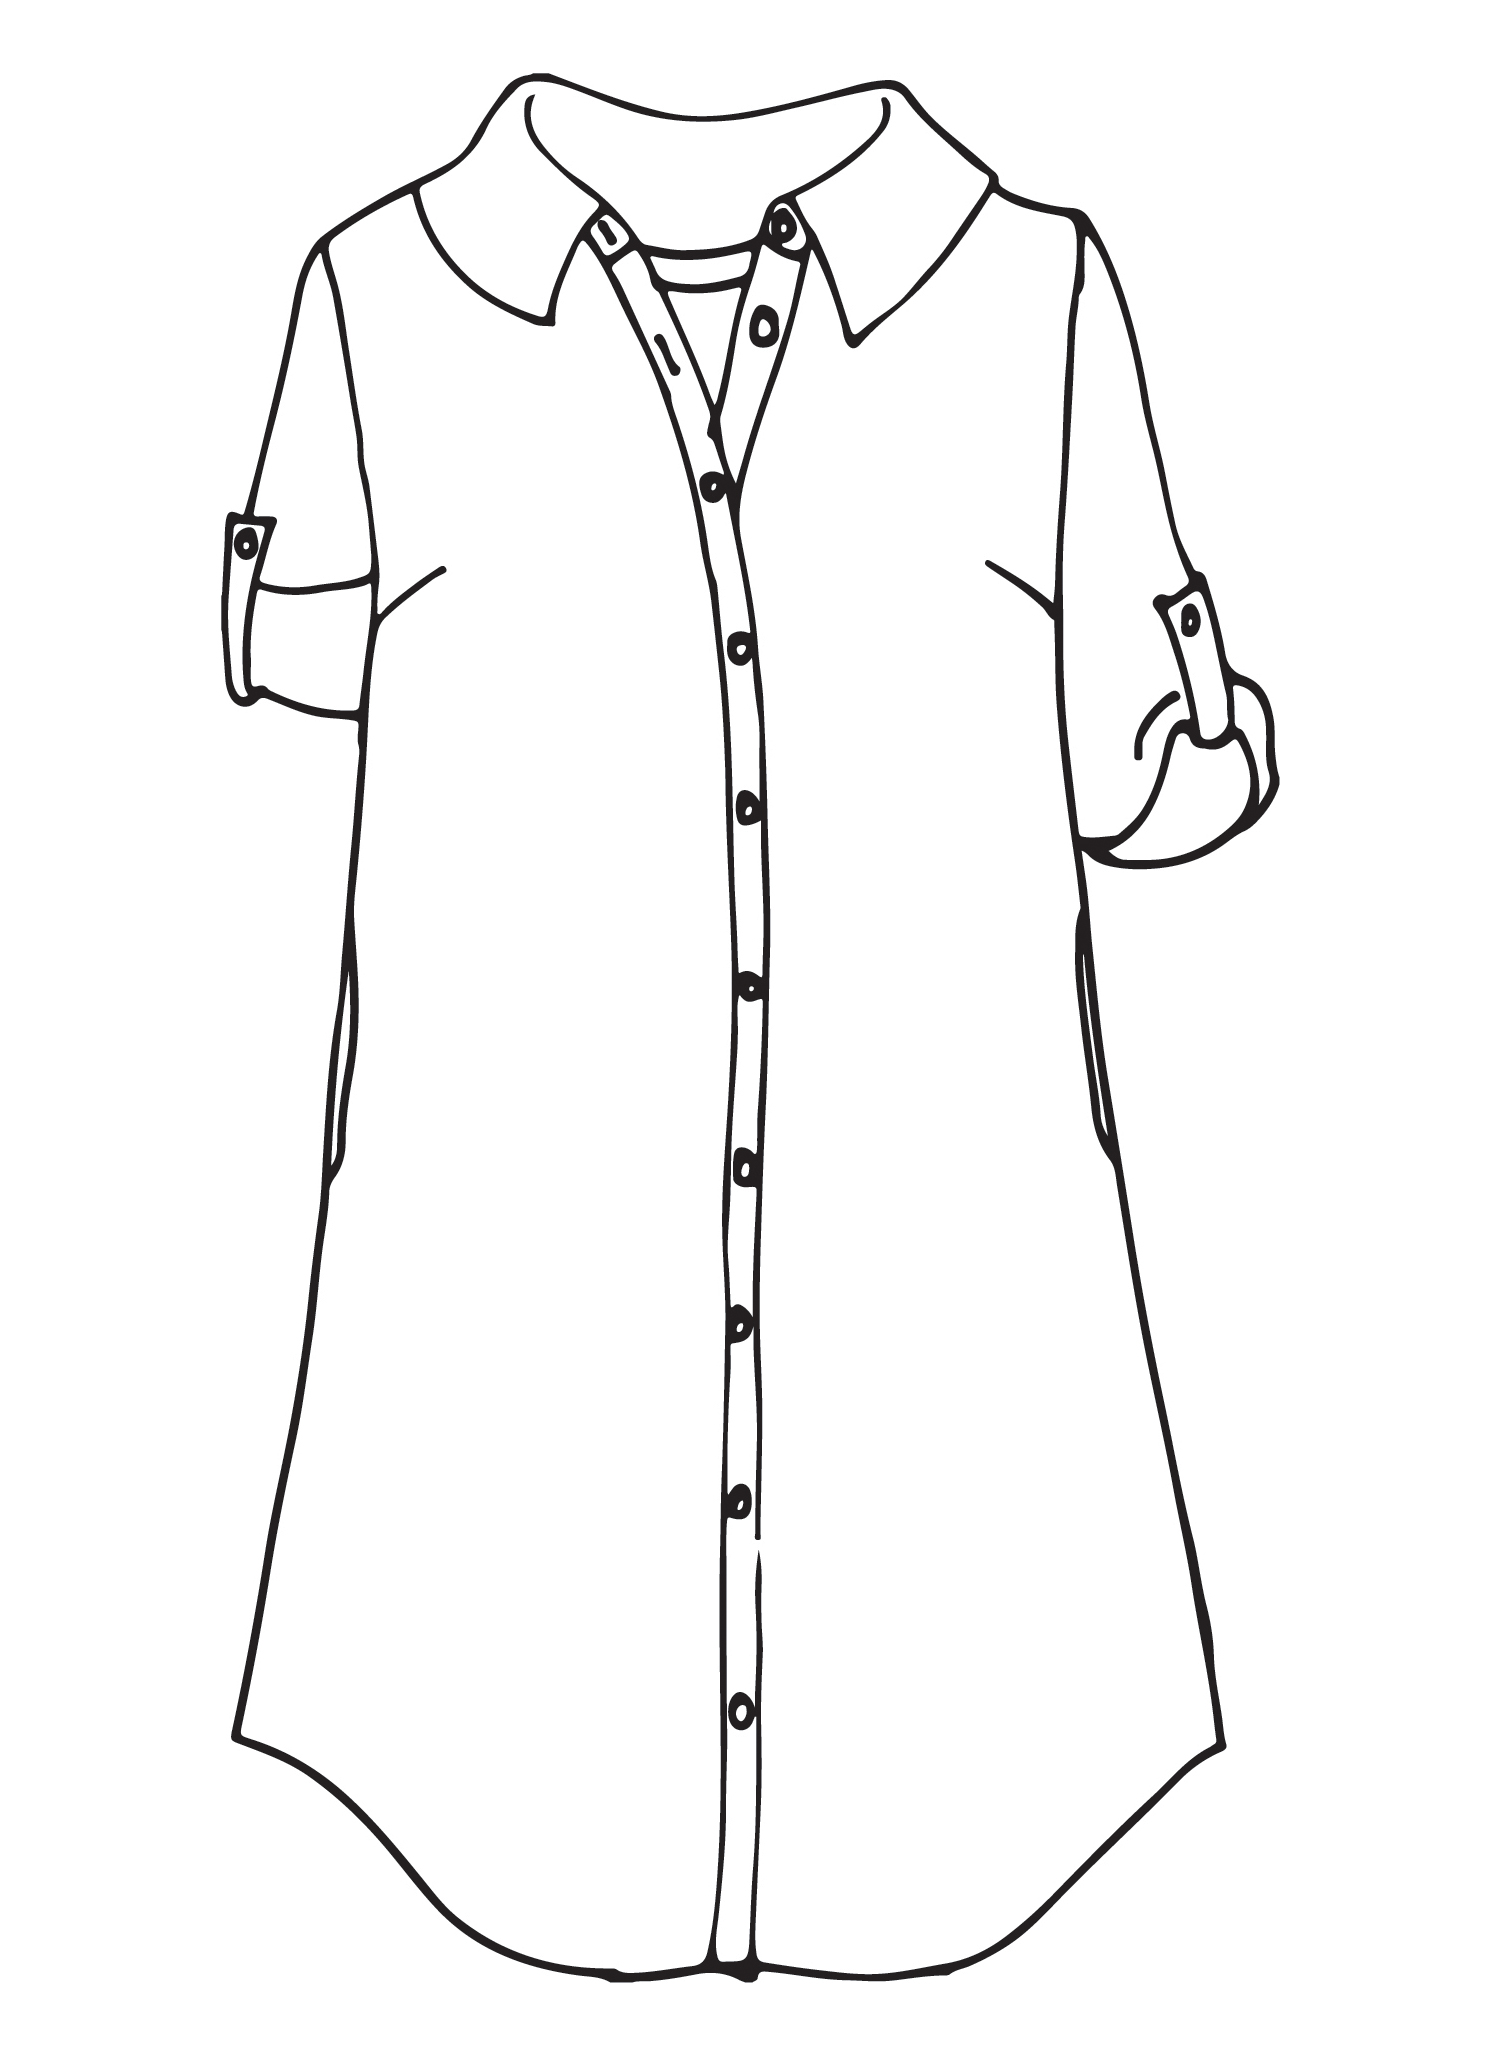 Work Shirt Dress sketch image